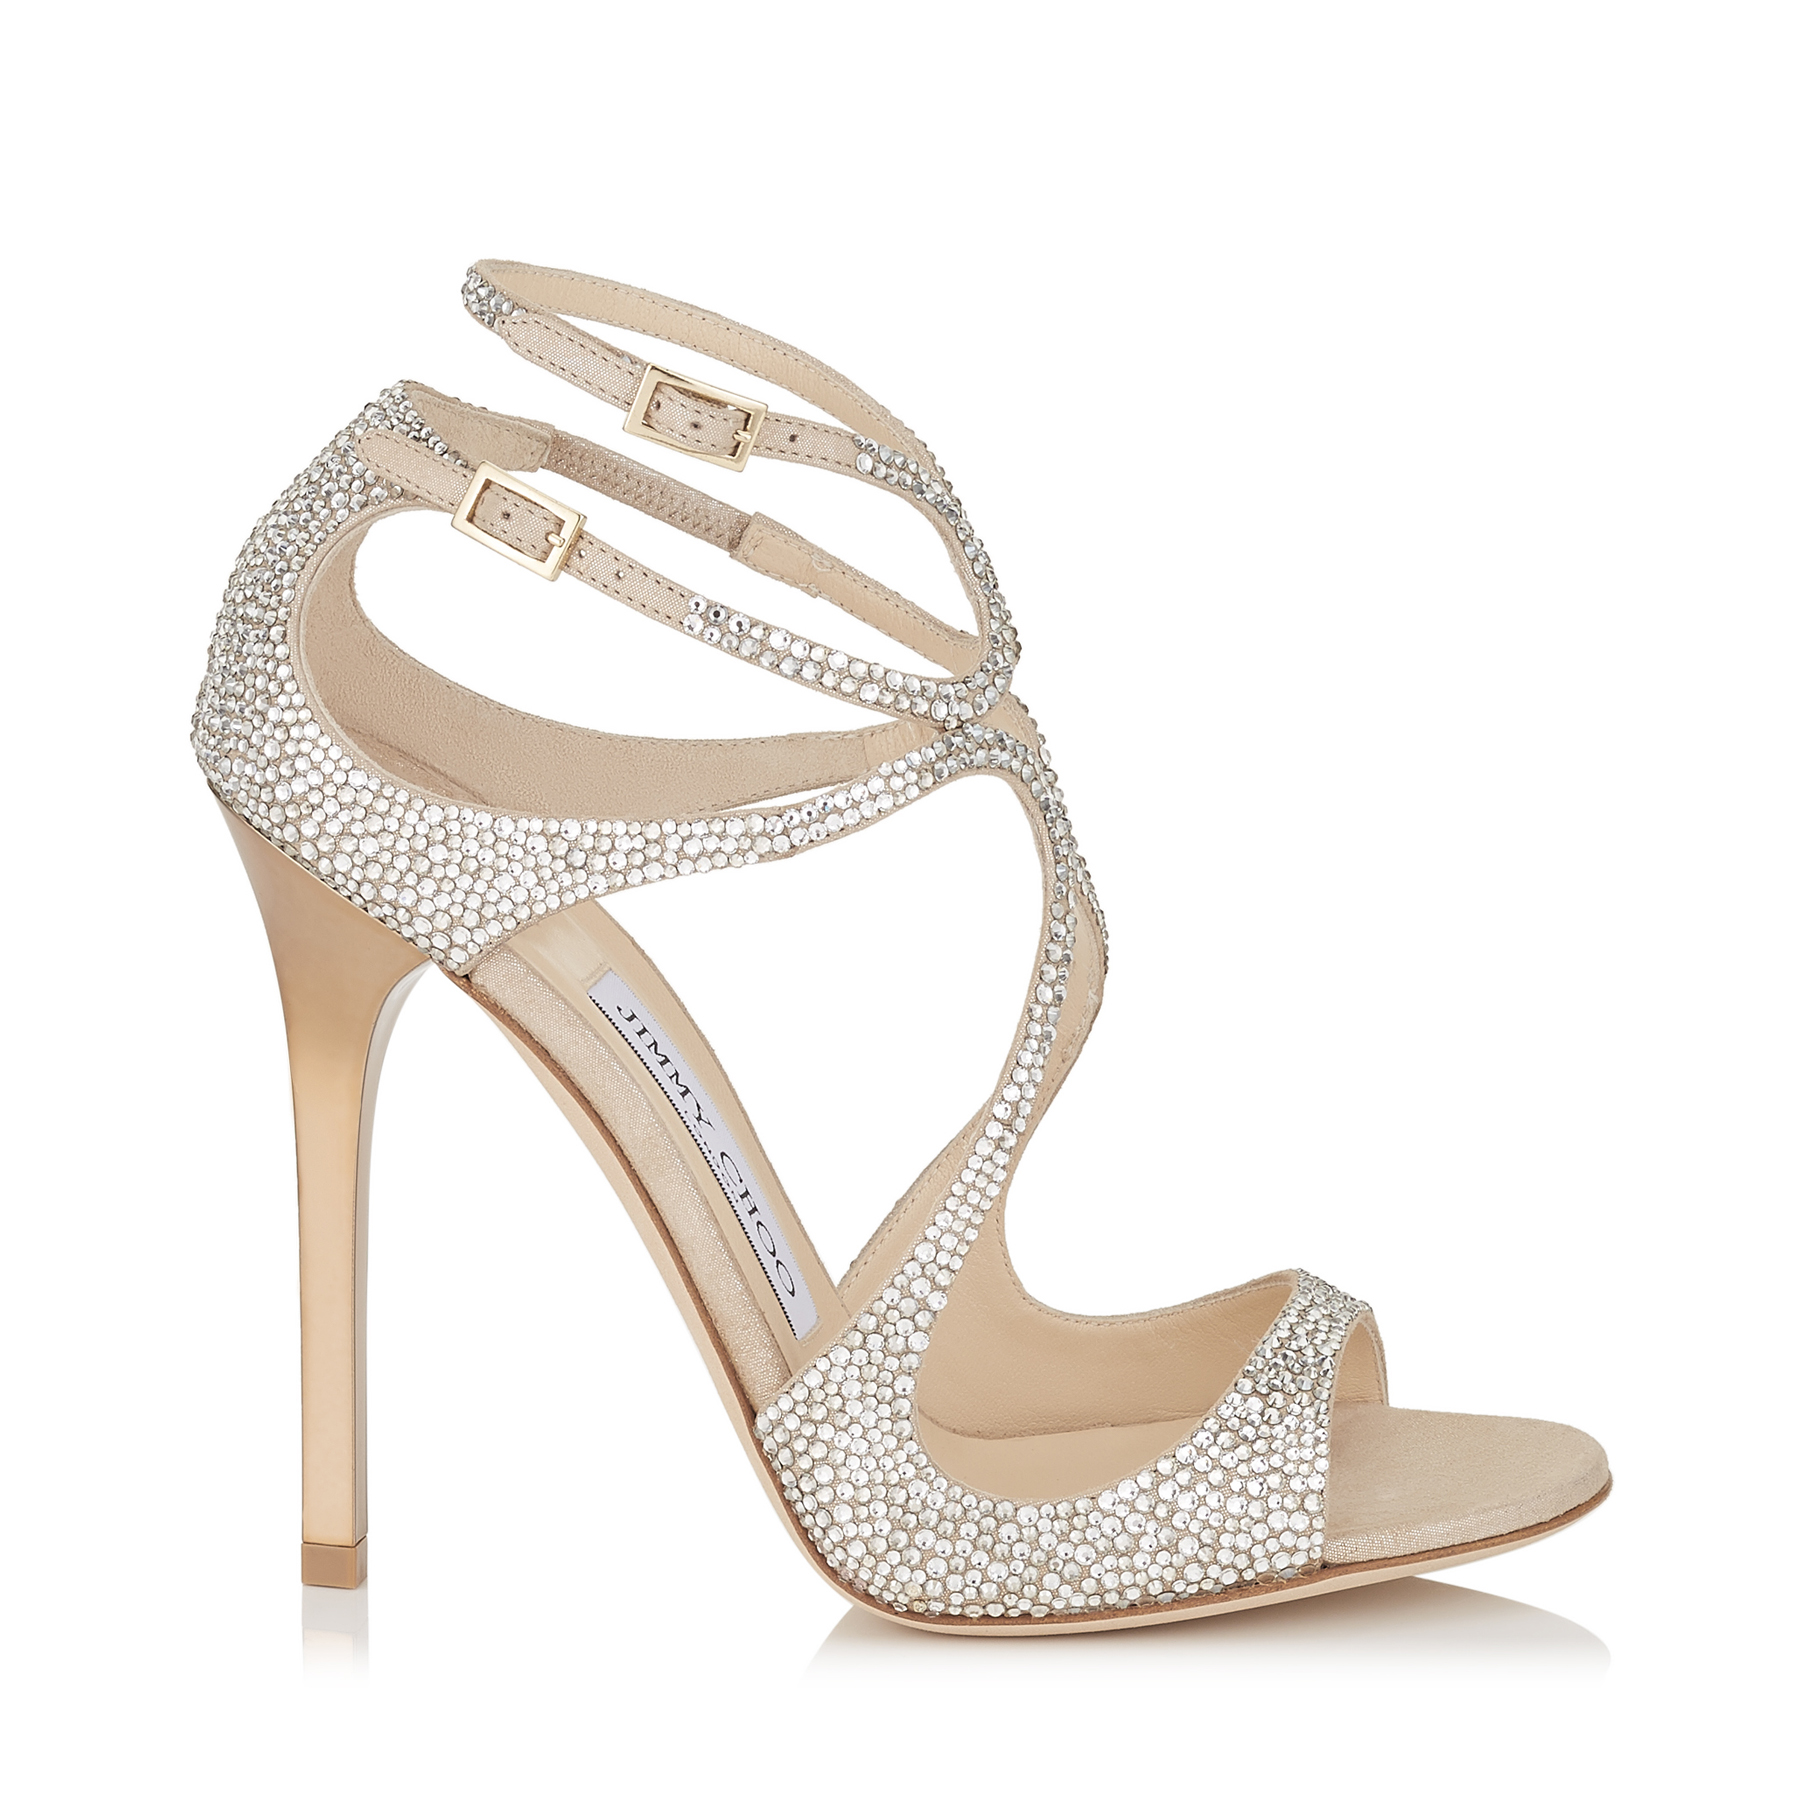 LANCE Nude Suede Sandals with Crystals by Jimmy Choo